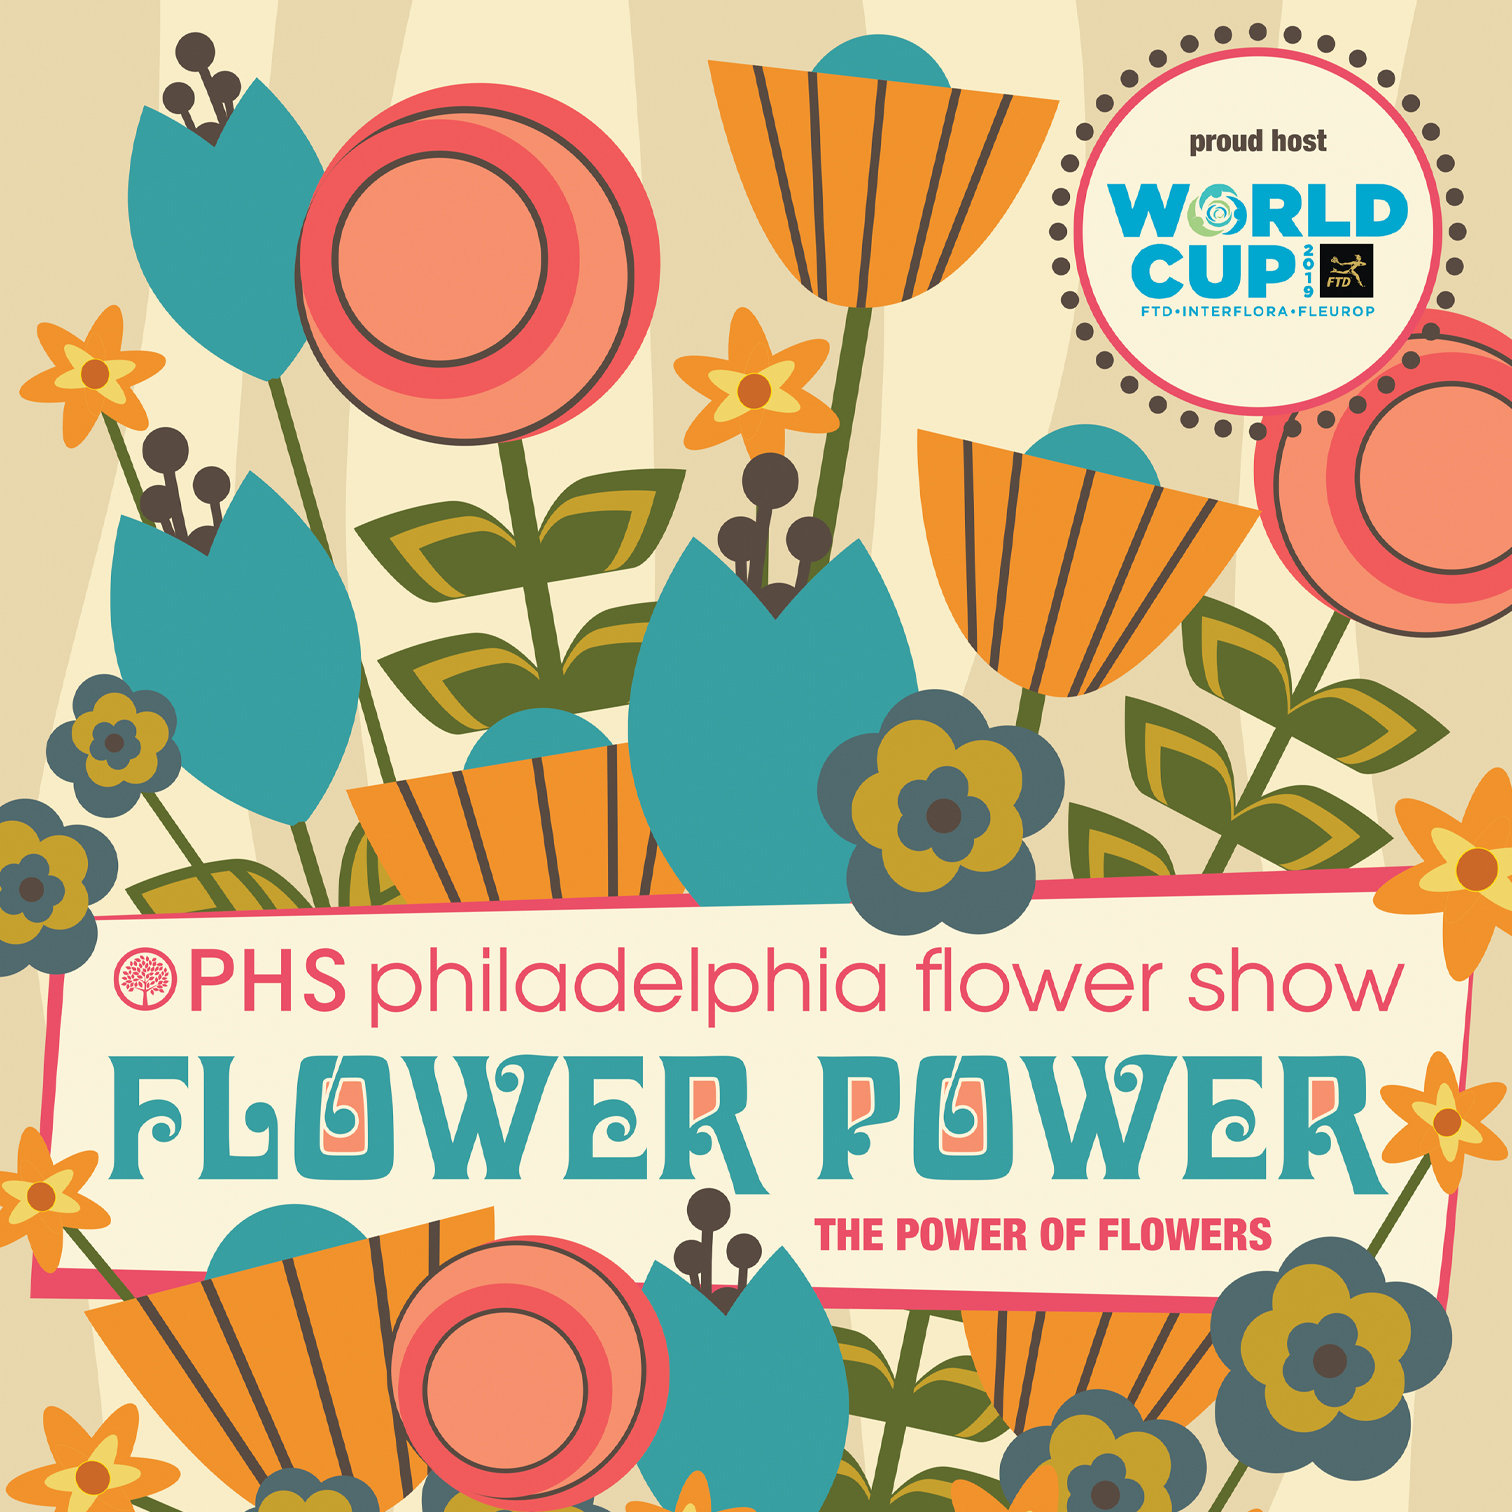 An alternate option for the 2019 PHS Philadelphia Flower Show poster that was not chosen.